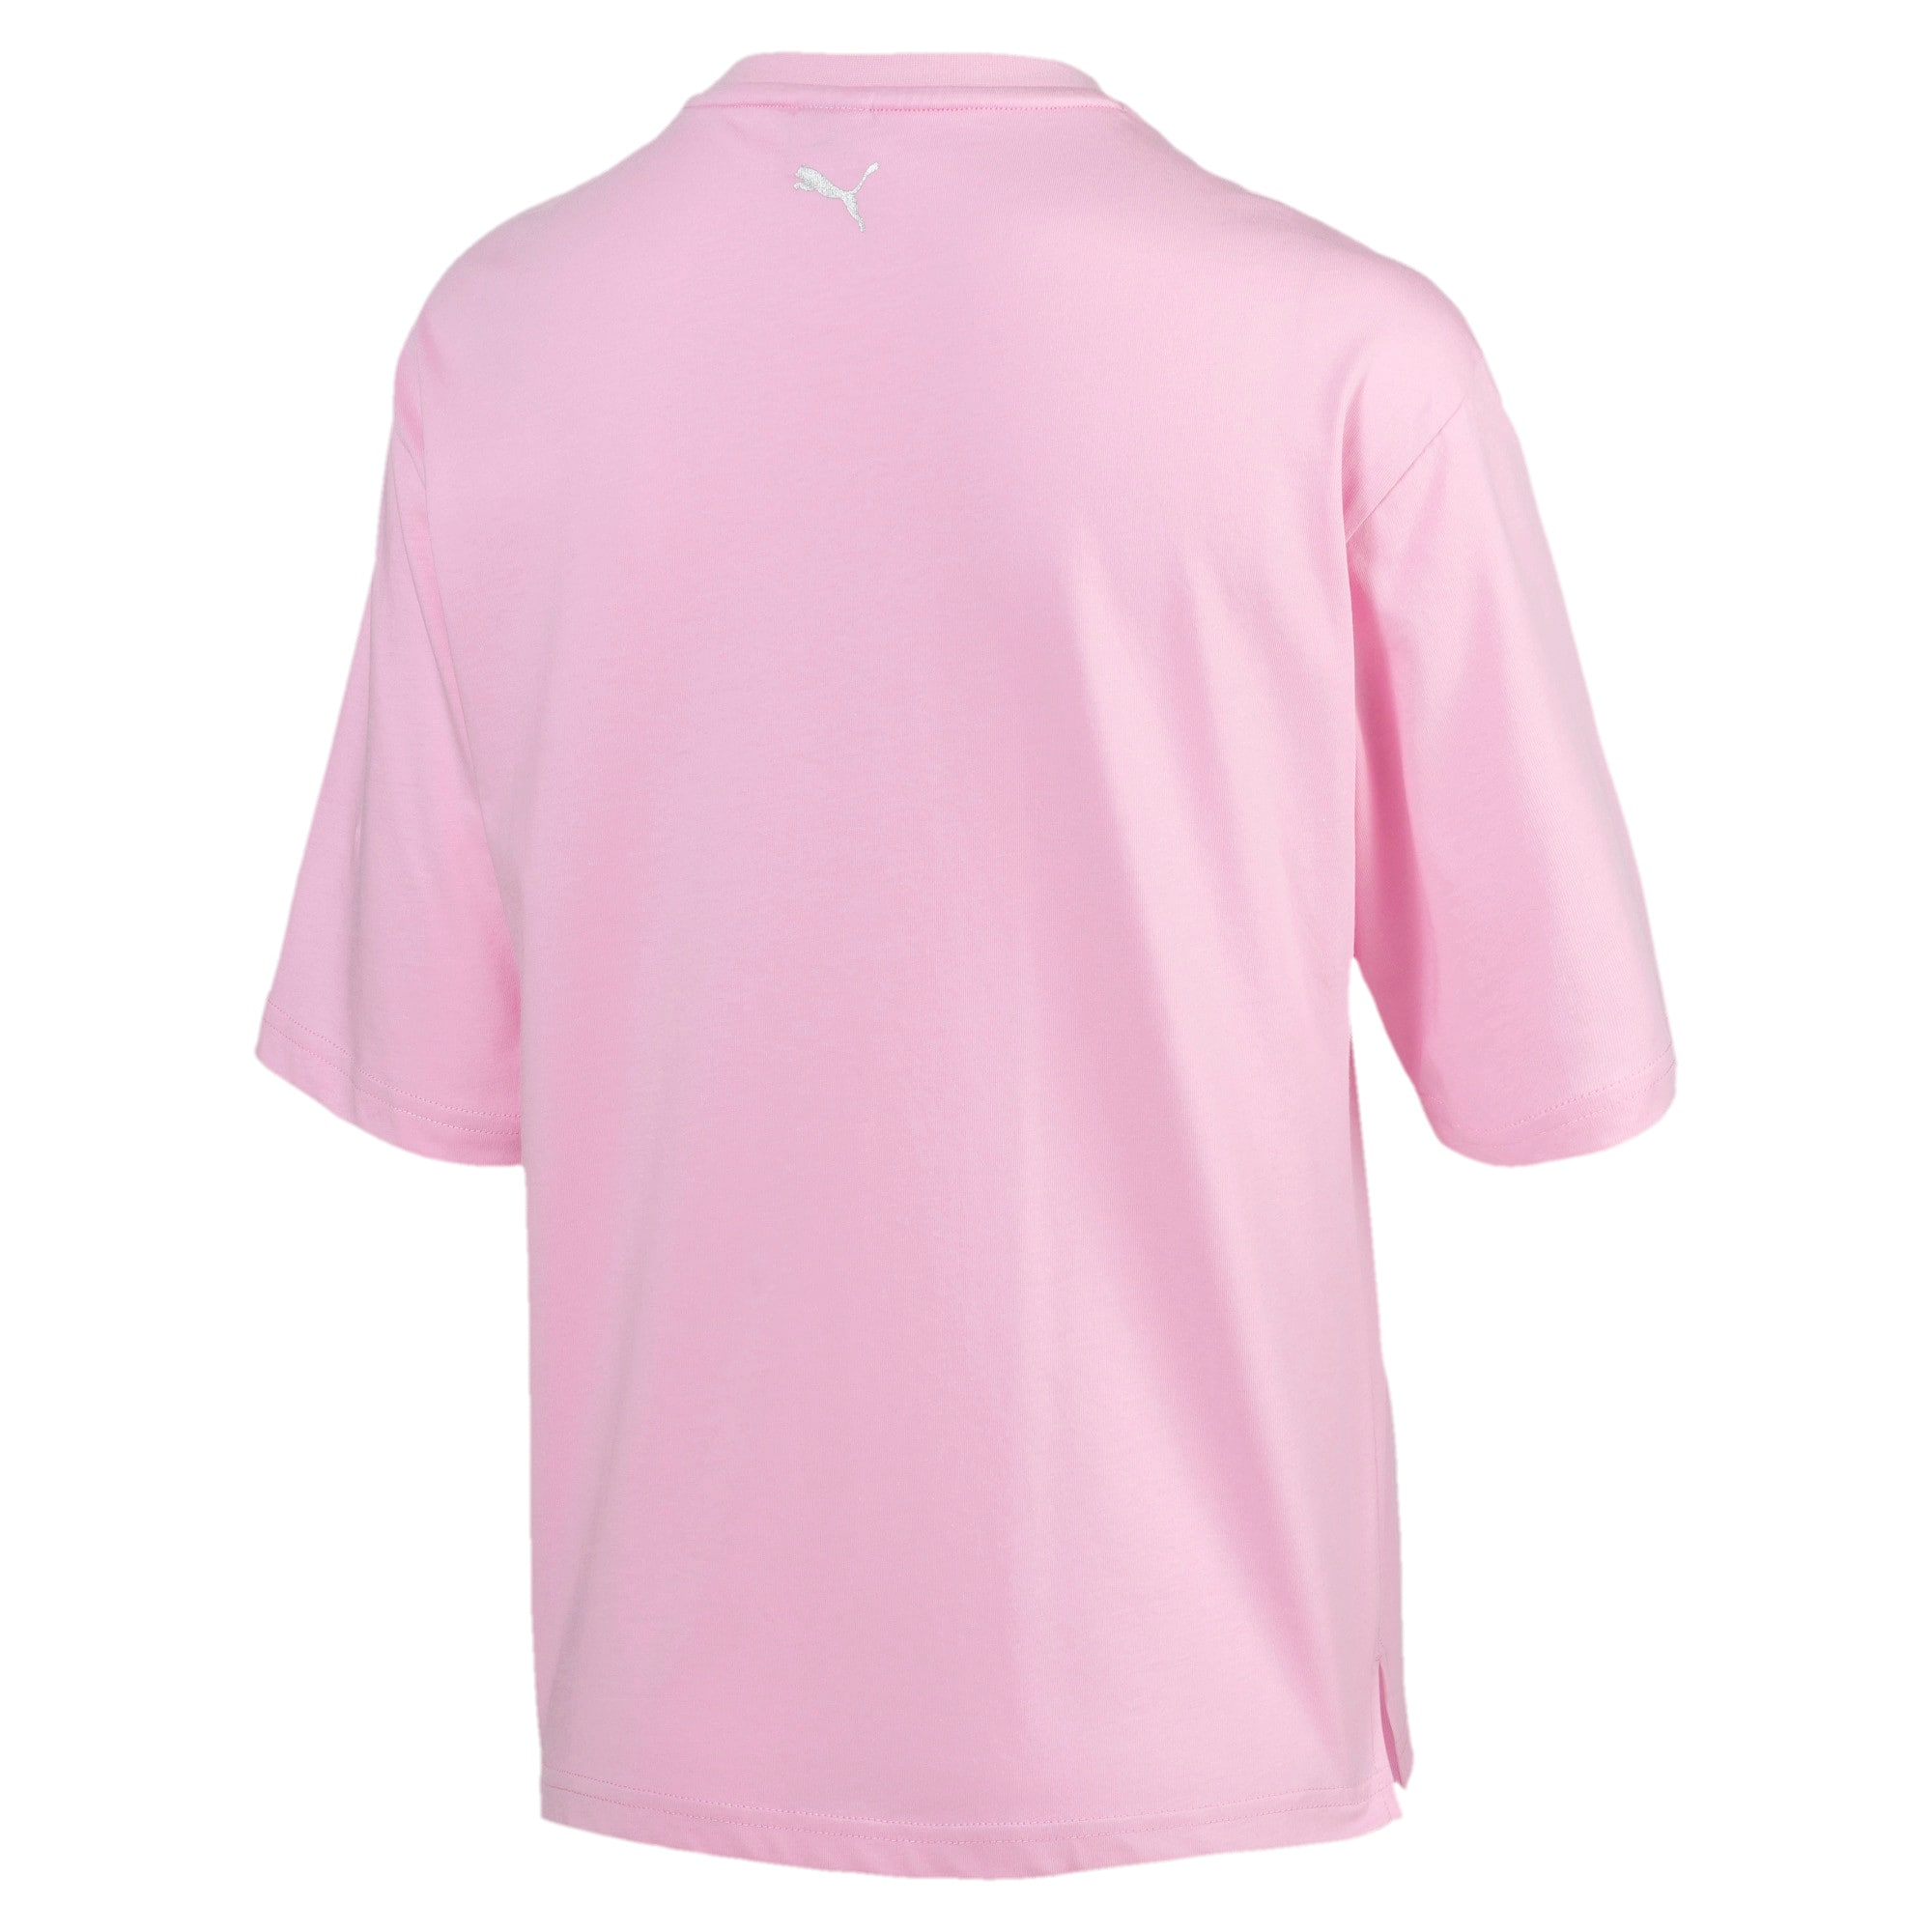 Thumbnail 5 of Trailblazer Women's Tee, Pale Pink, medium